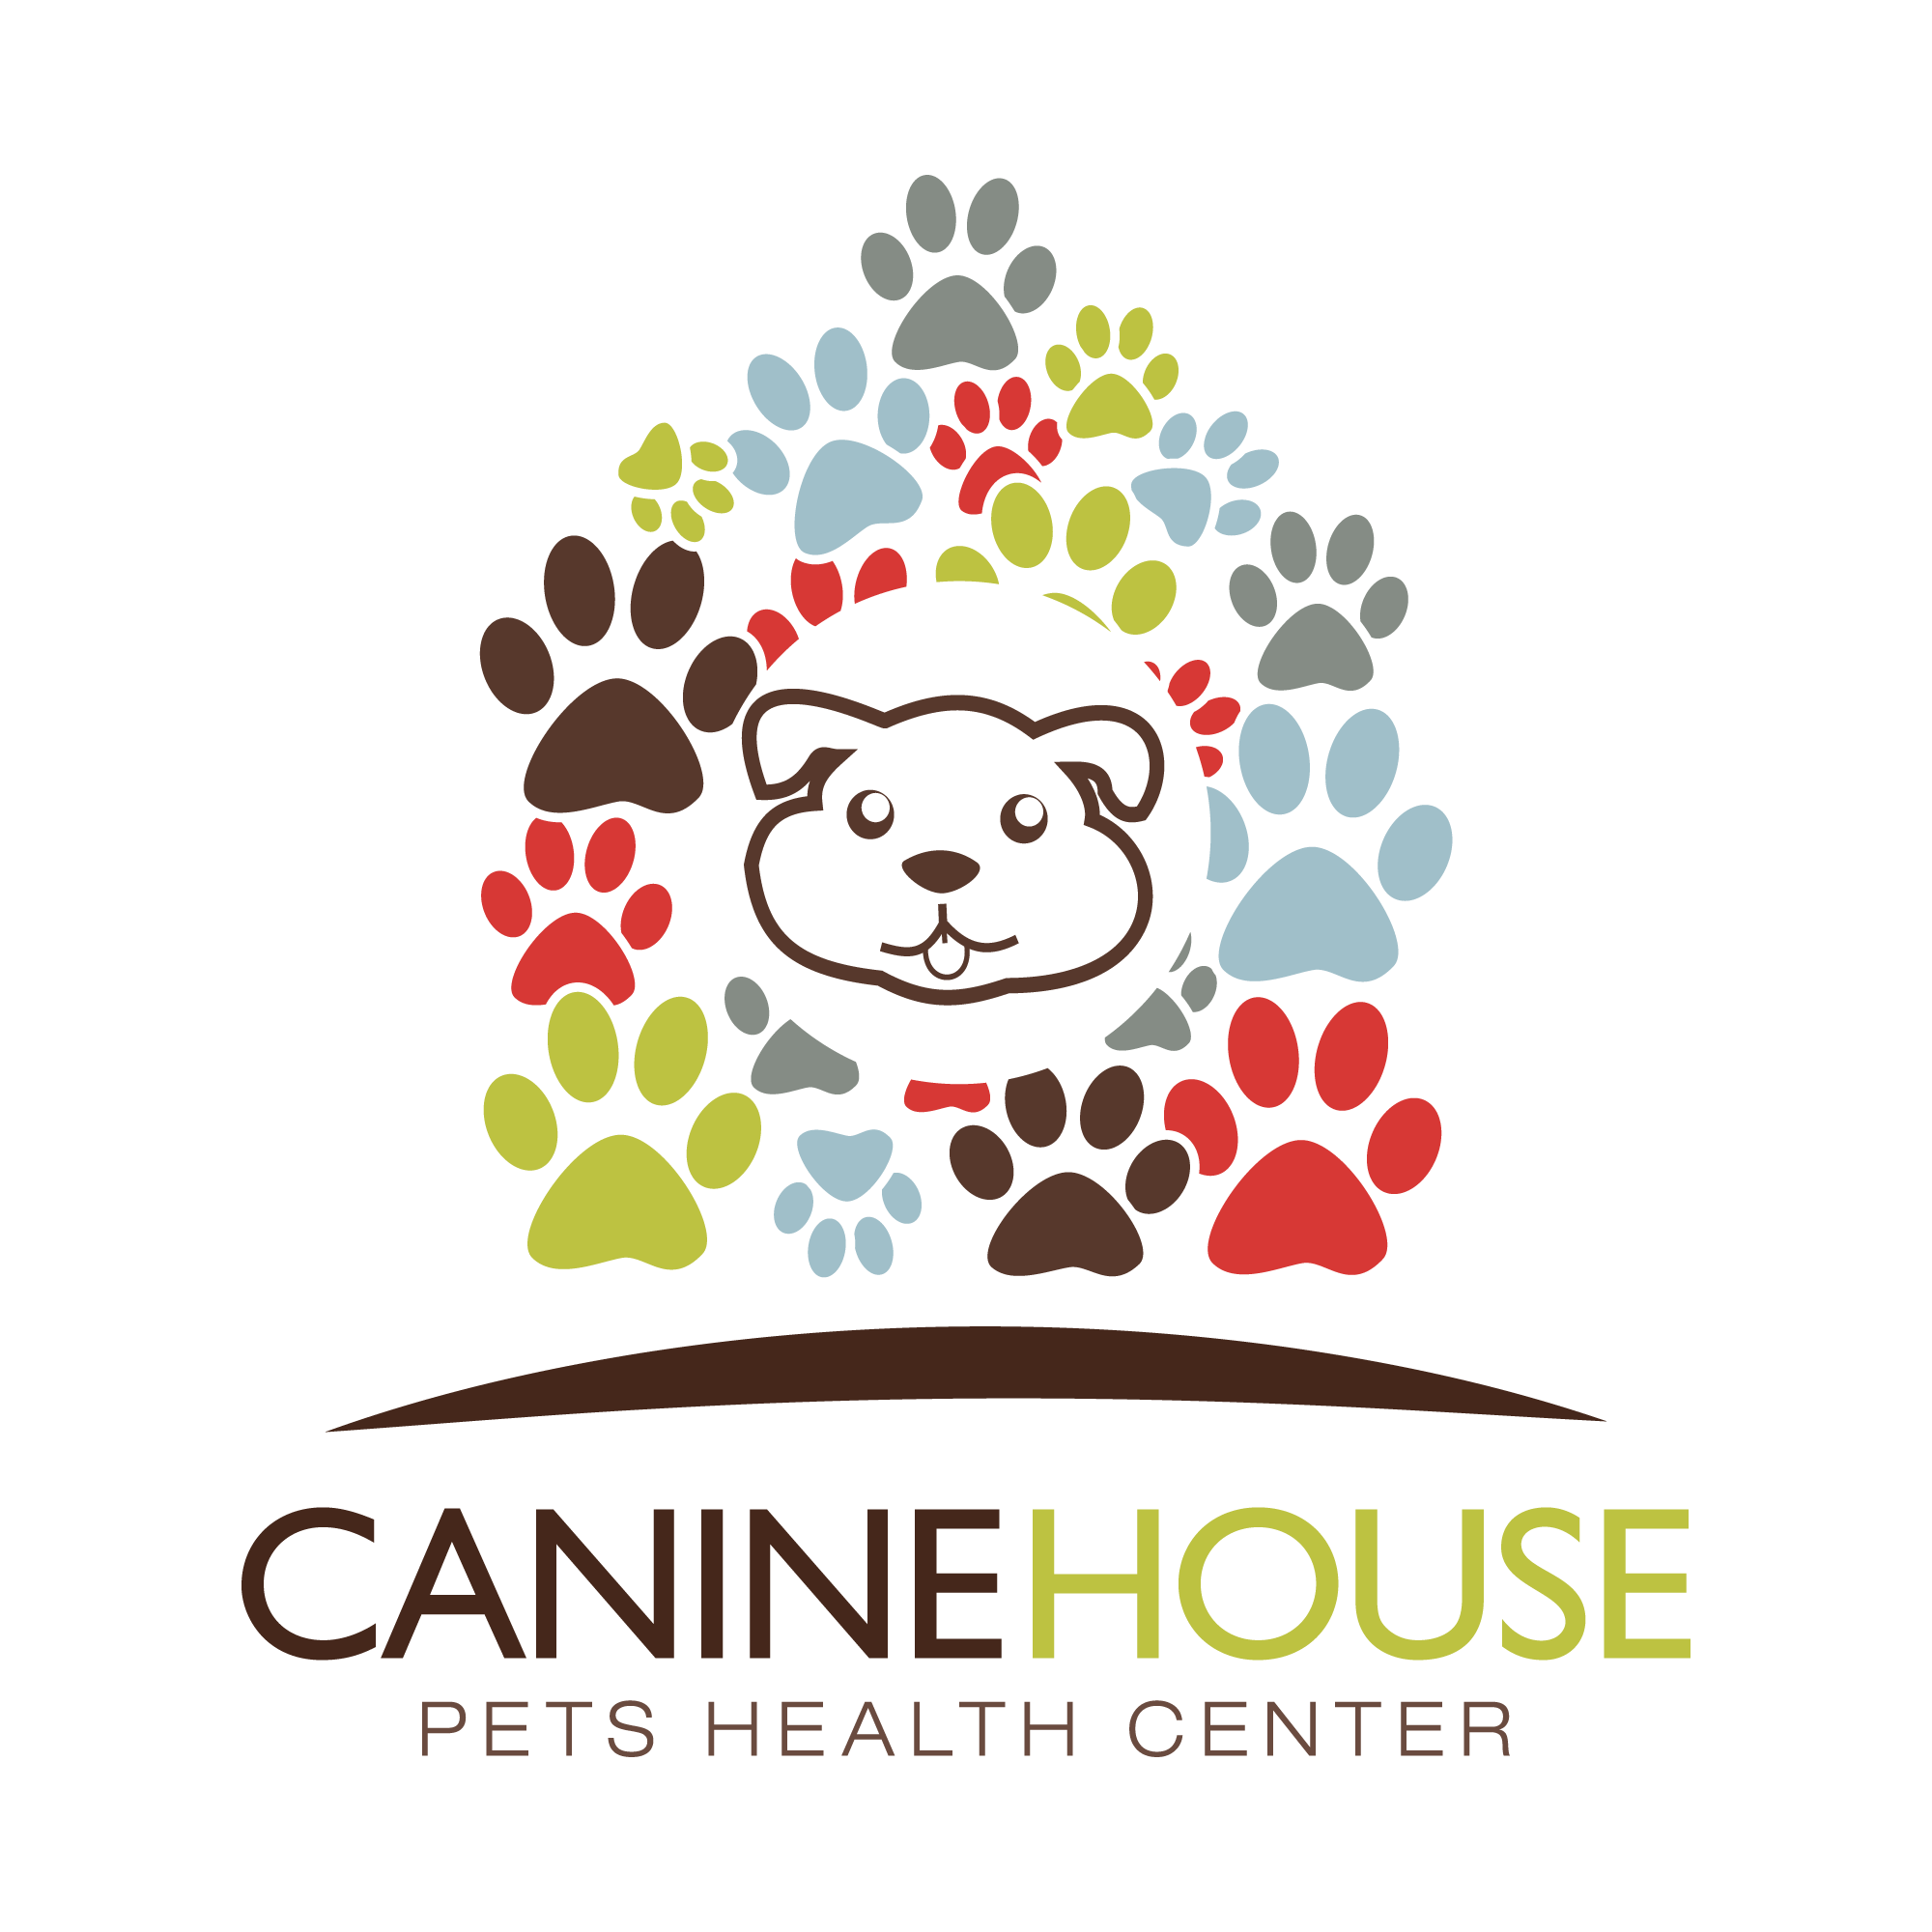 This Logo Is Ideal For A Animal Shelter Pet Products And